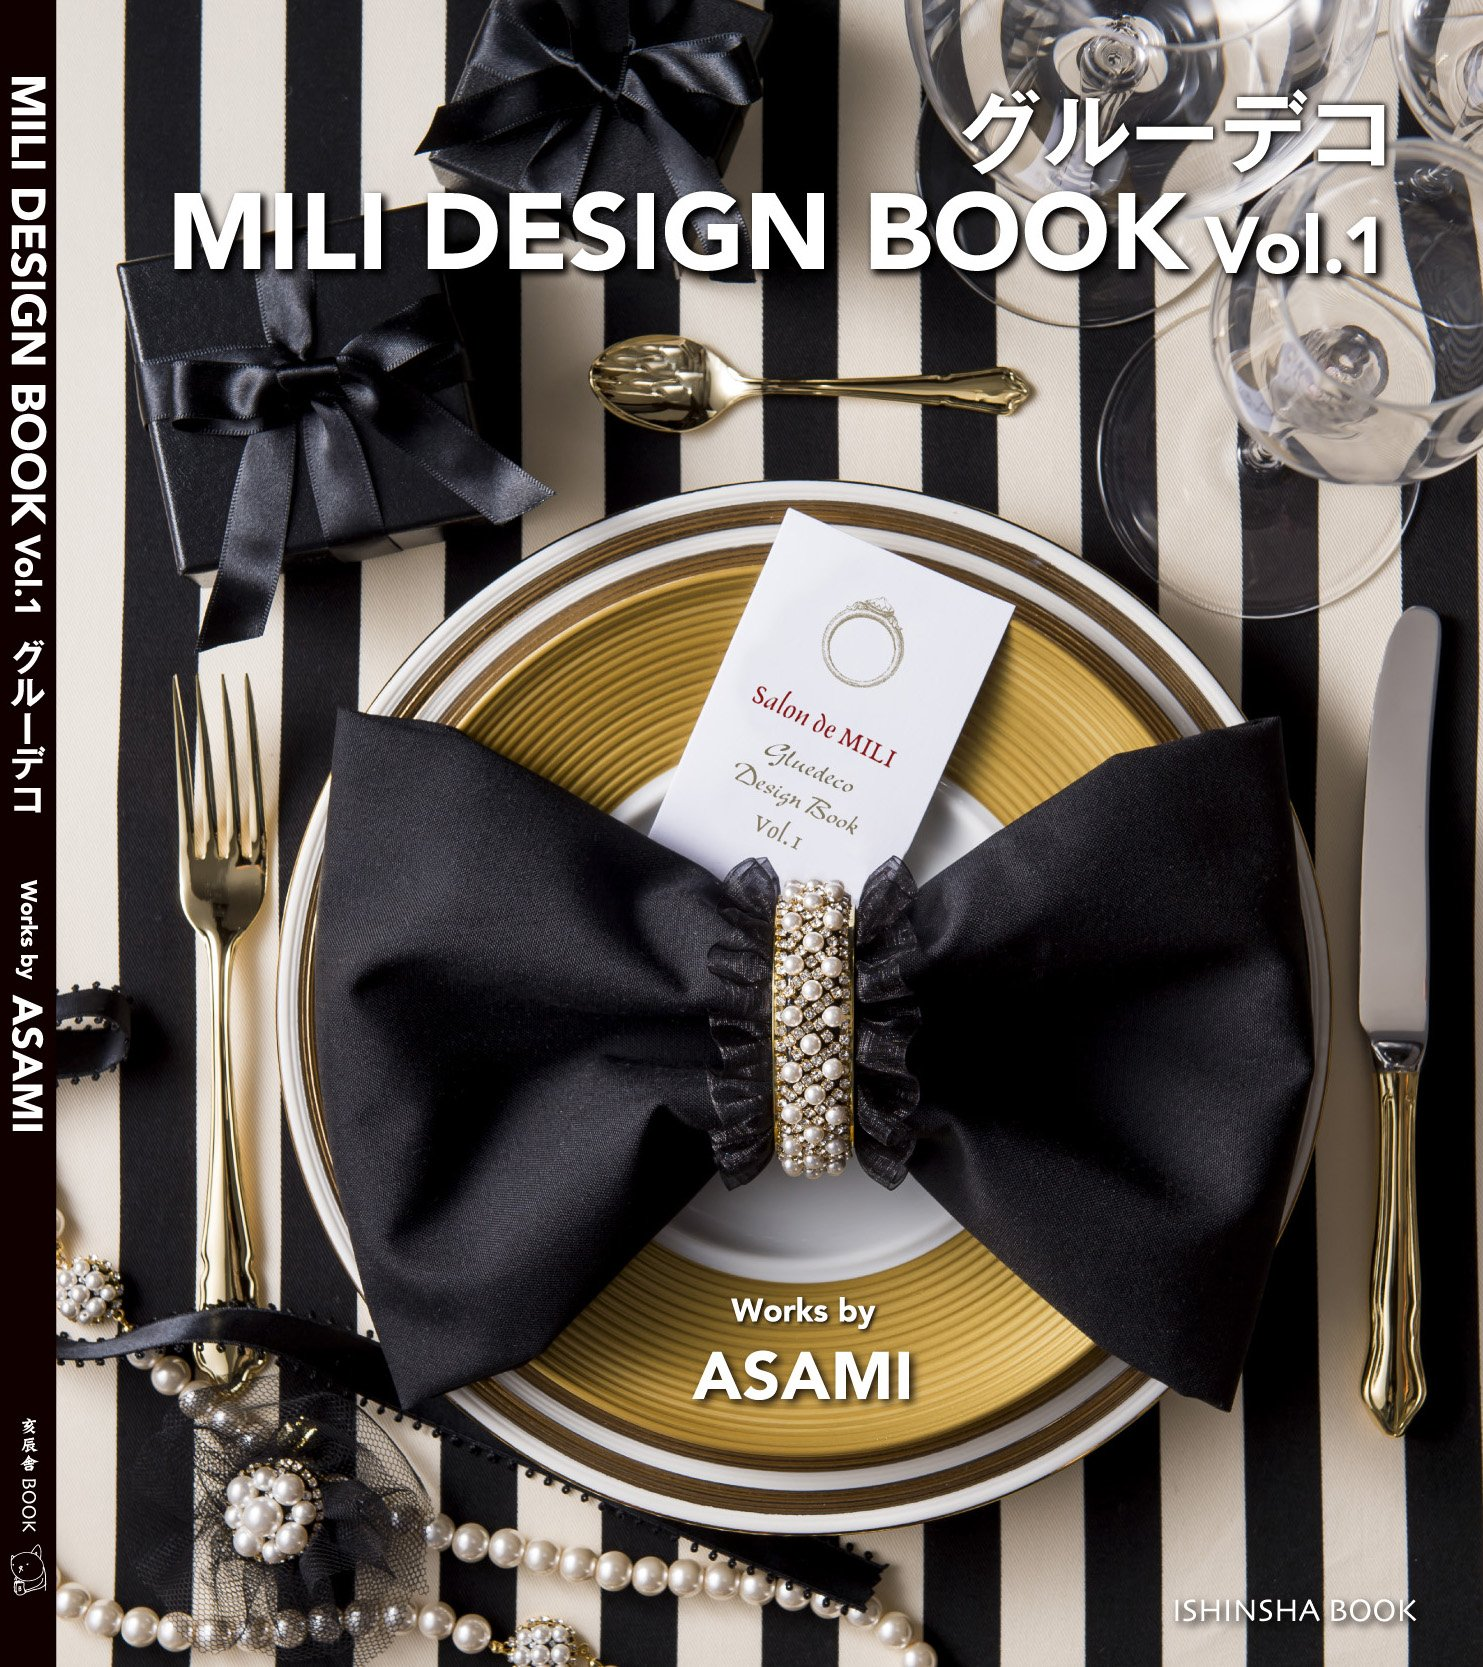 Gurudeko MILI DESIGN BOOK